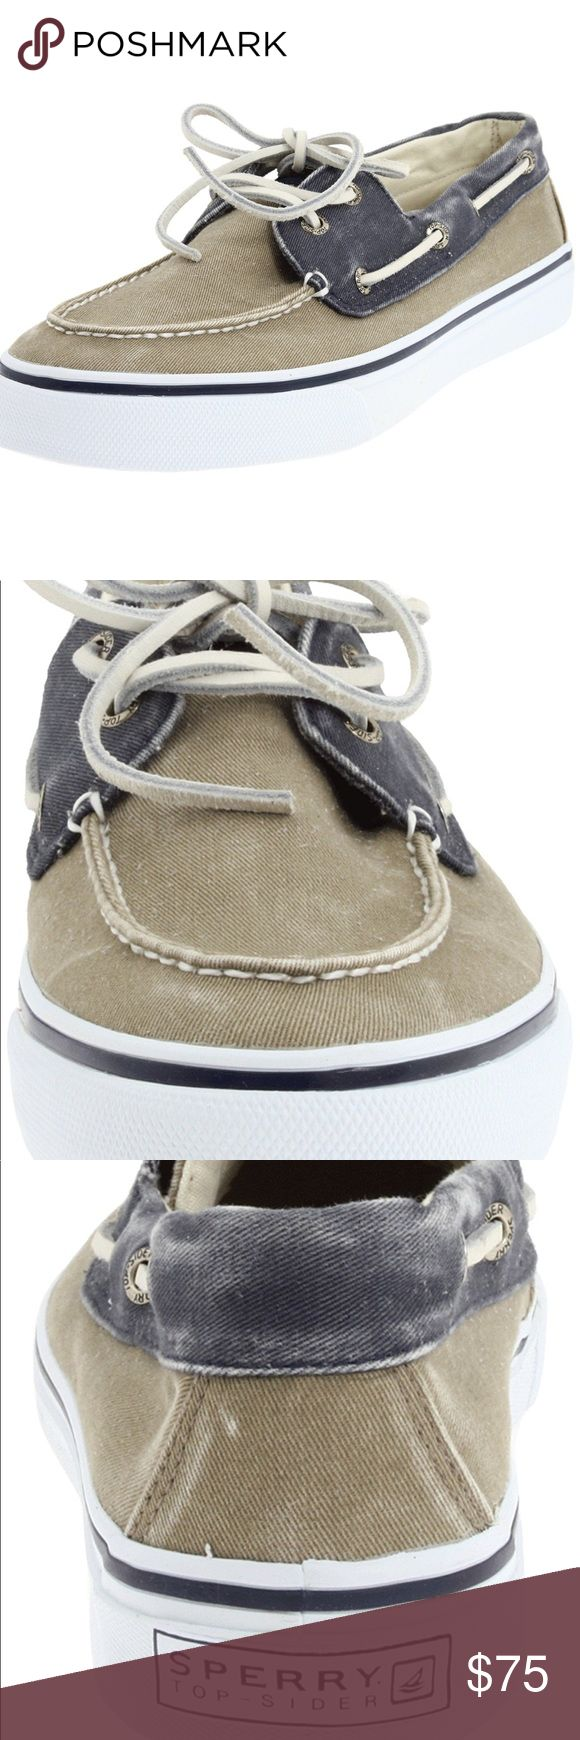 Top-Sider Men's Bahama Two-Eyelet Boat Shoe ▪️NEW IN BOX - NEVER WORN  ▪️NAVY / TAUPE  ▪️ 360-degree lacing system Hand-sewn construction Vulcanized rubber Ethylene vinyl acetate cusioned midsole Sperry Top-Sider Shoes Loafers & Slip-Ons